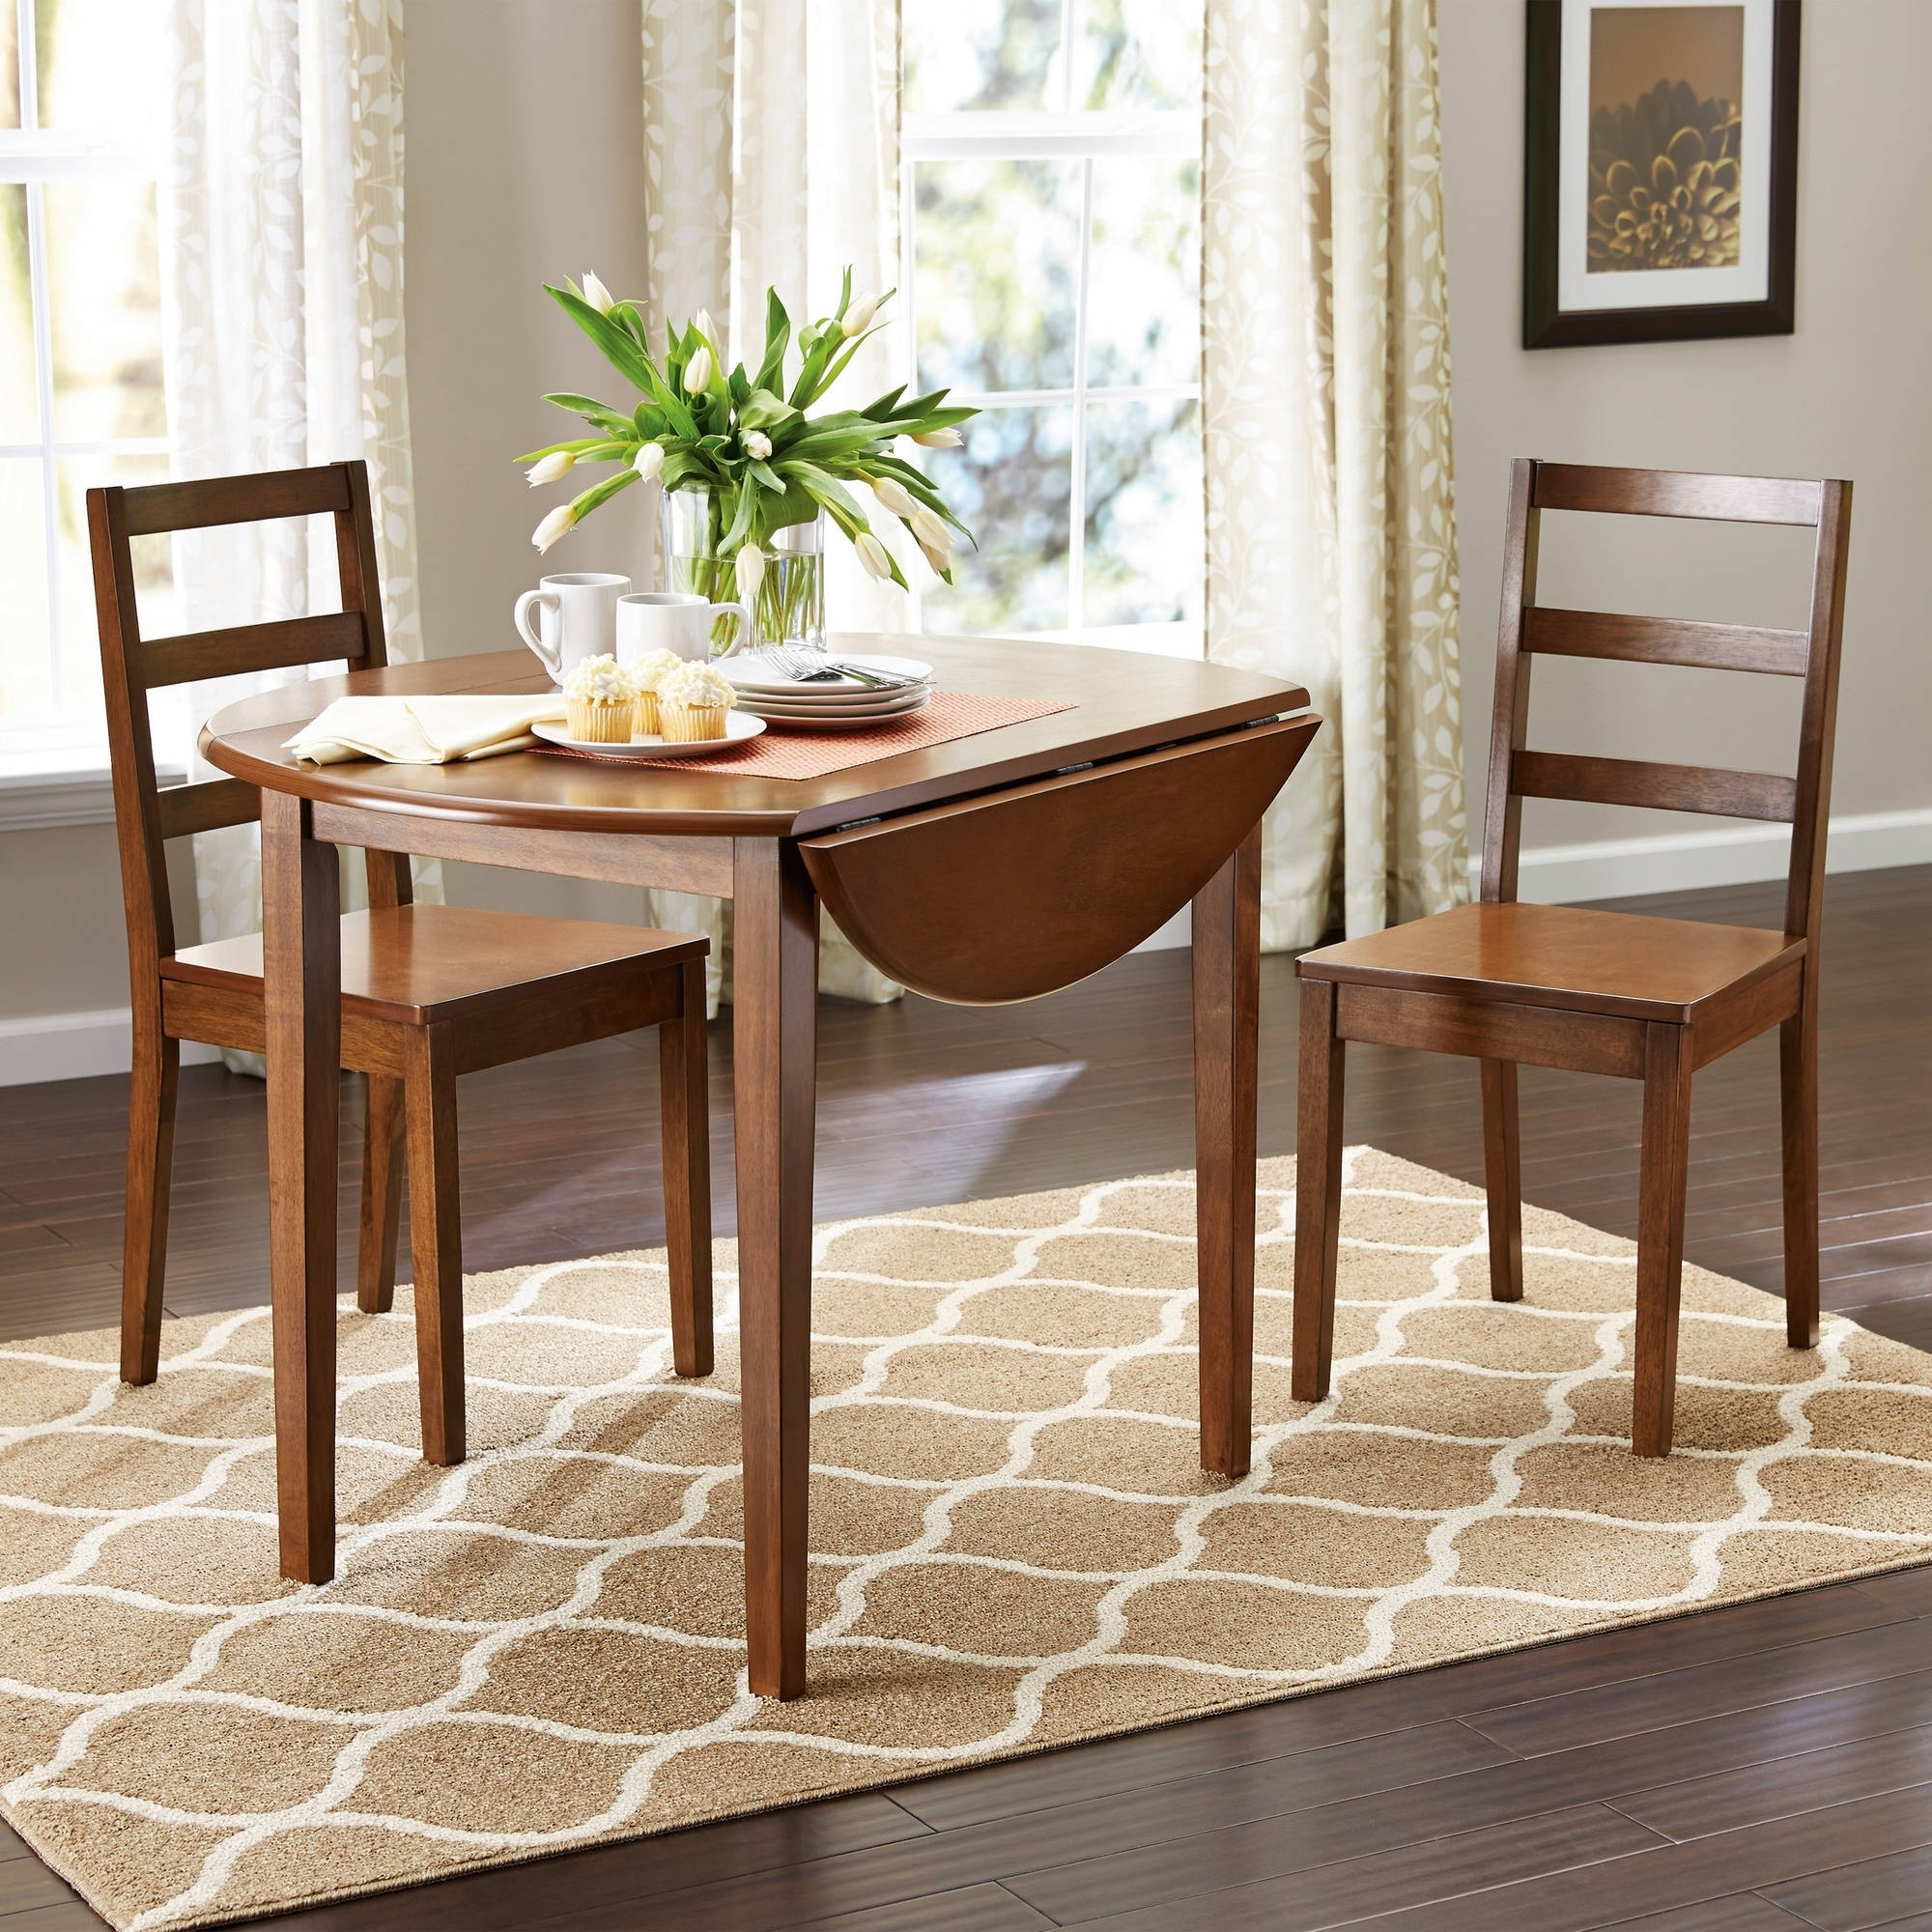 The 21 Beautiful Dining Room Tables Round With Leaves Regarding Well Known Two Person Dining Tables (View 19 of 25)